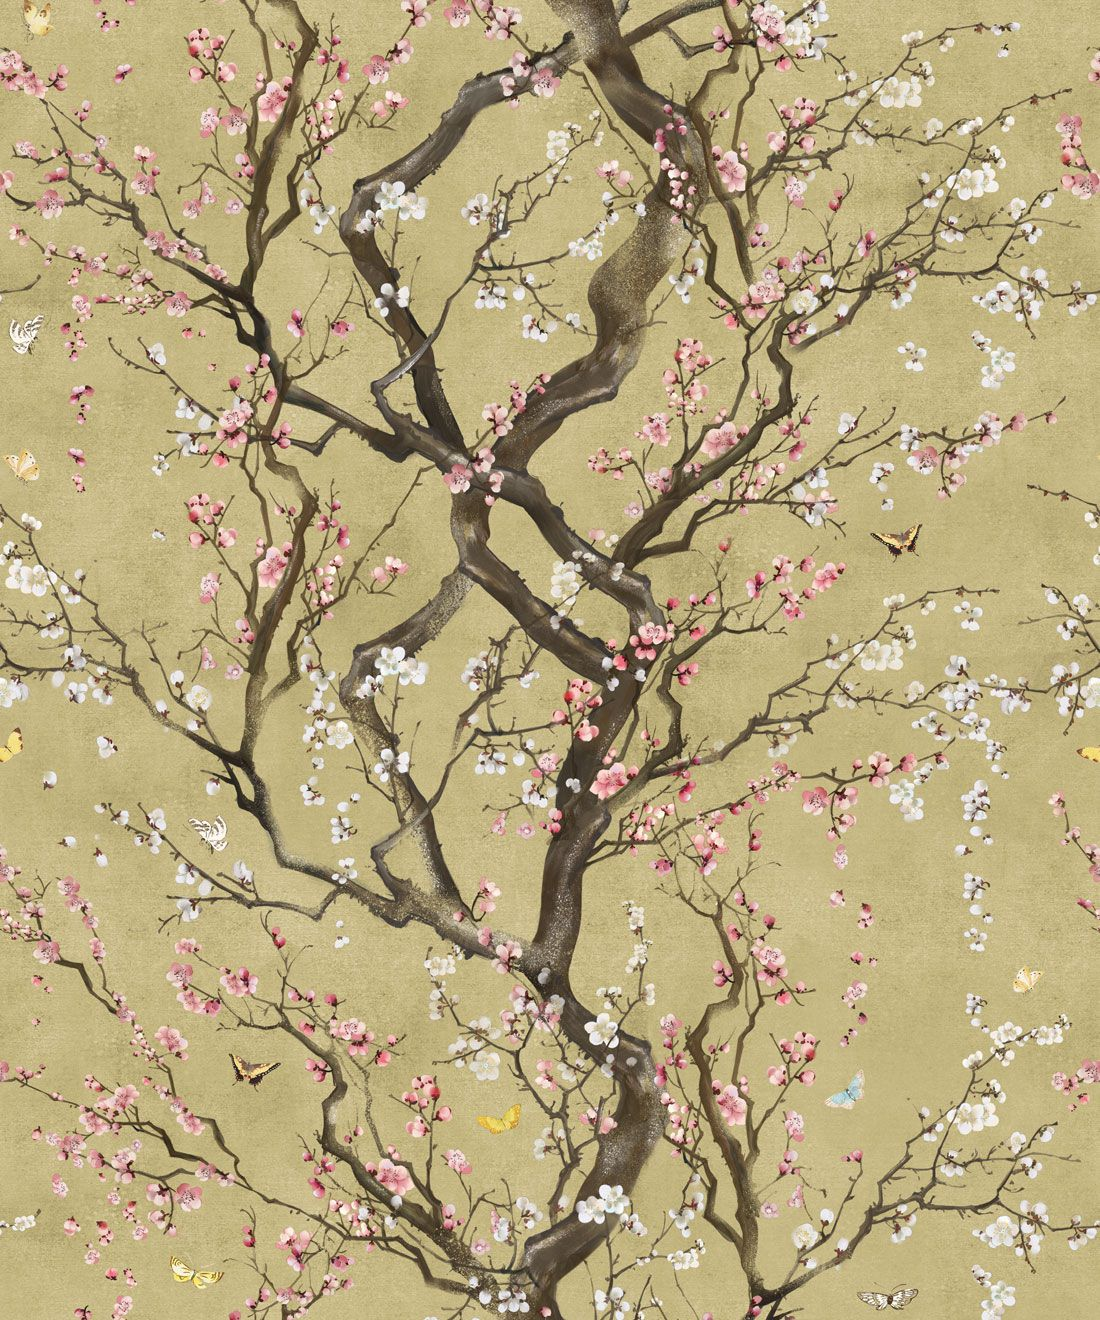 Japanese Floral Wallpaper Plum Blossom, Kingdom Home